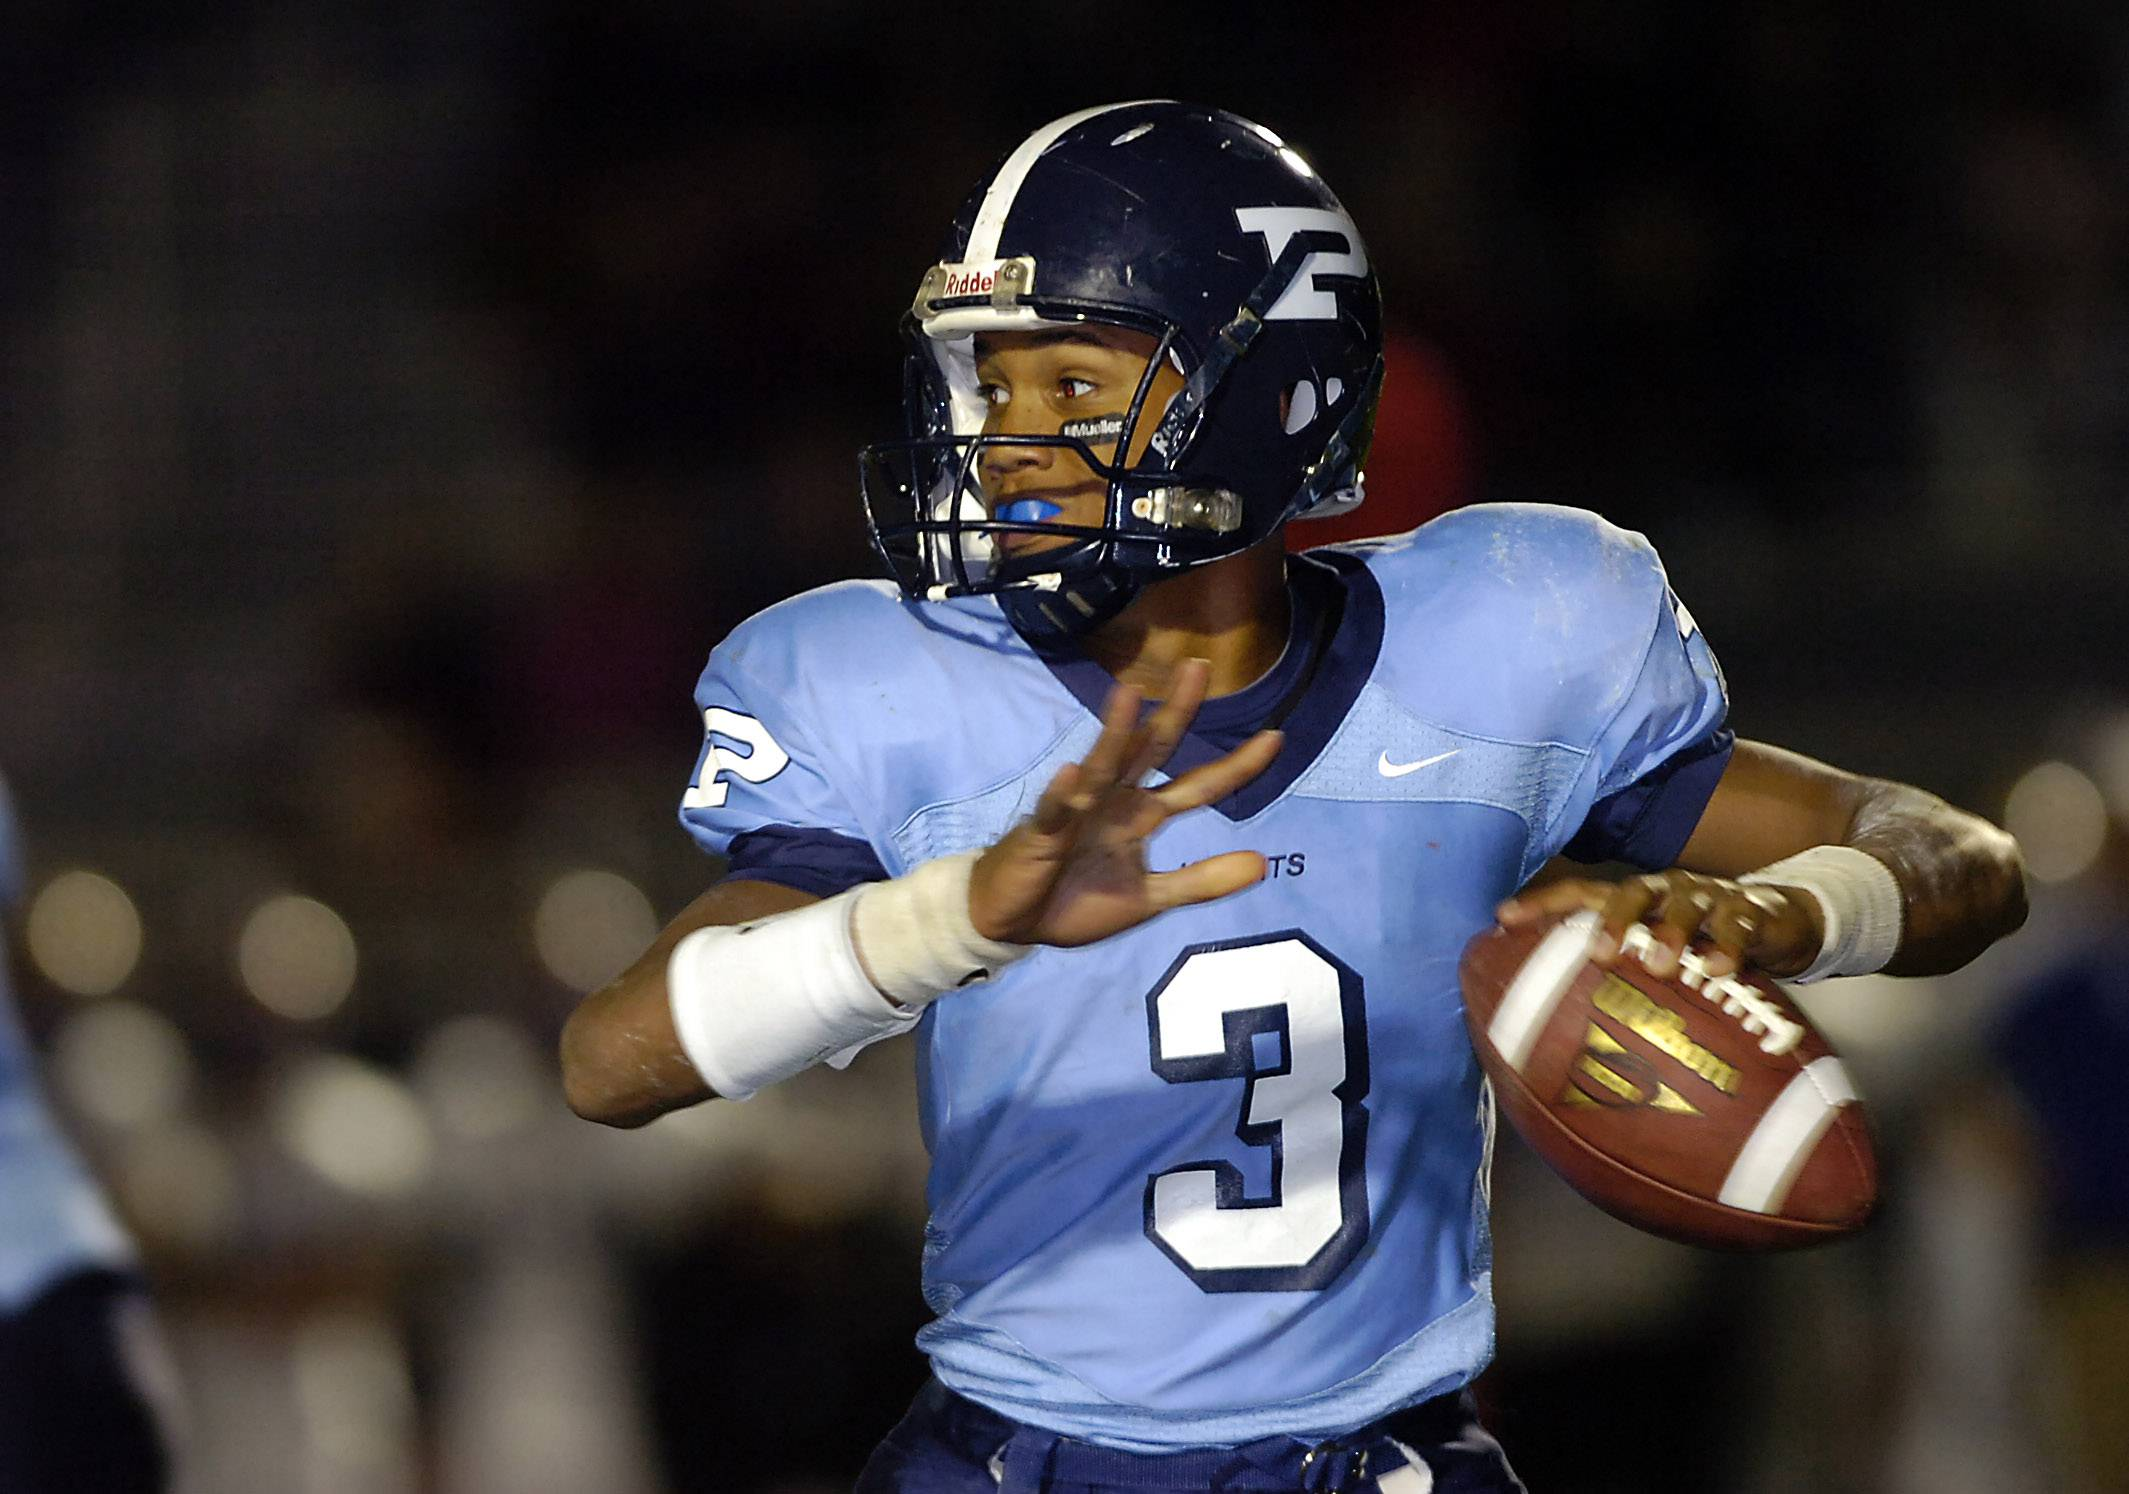 Miles Osei, shown here during his days as an all-state quarterback at Prospect, is now the football head coach at Elk Grove.